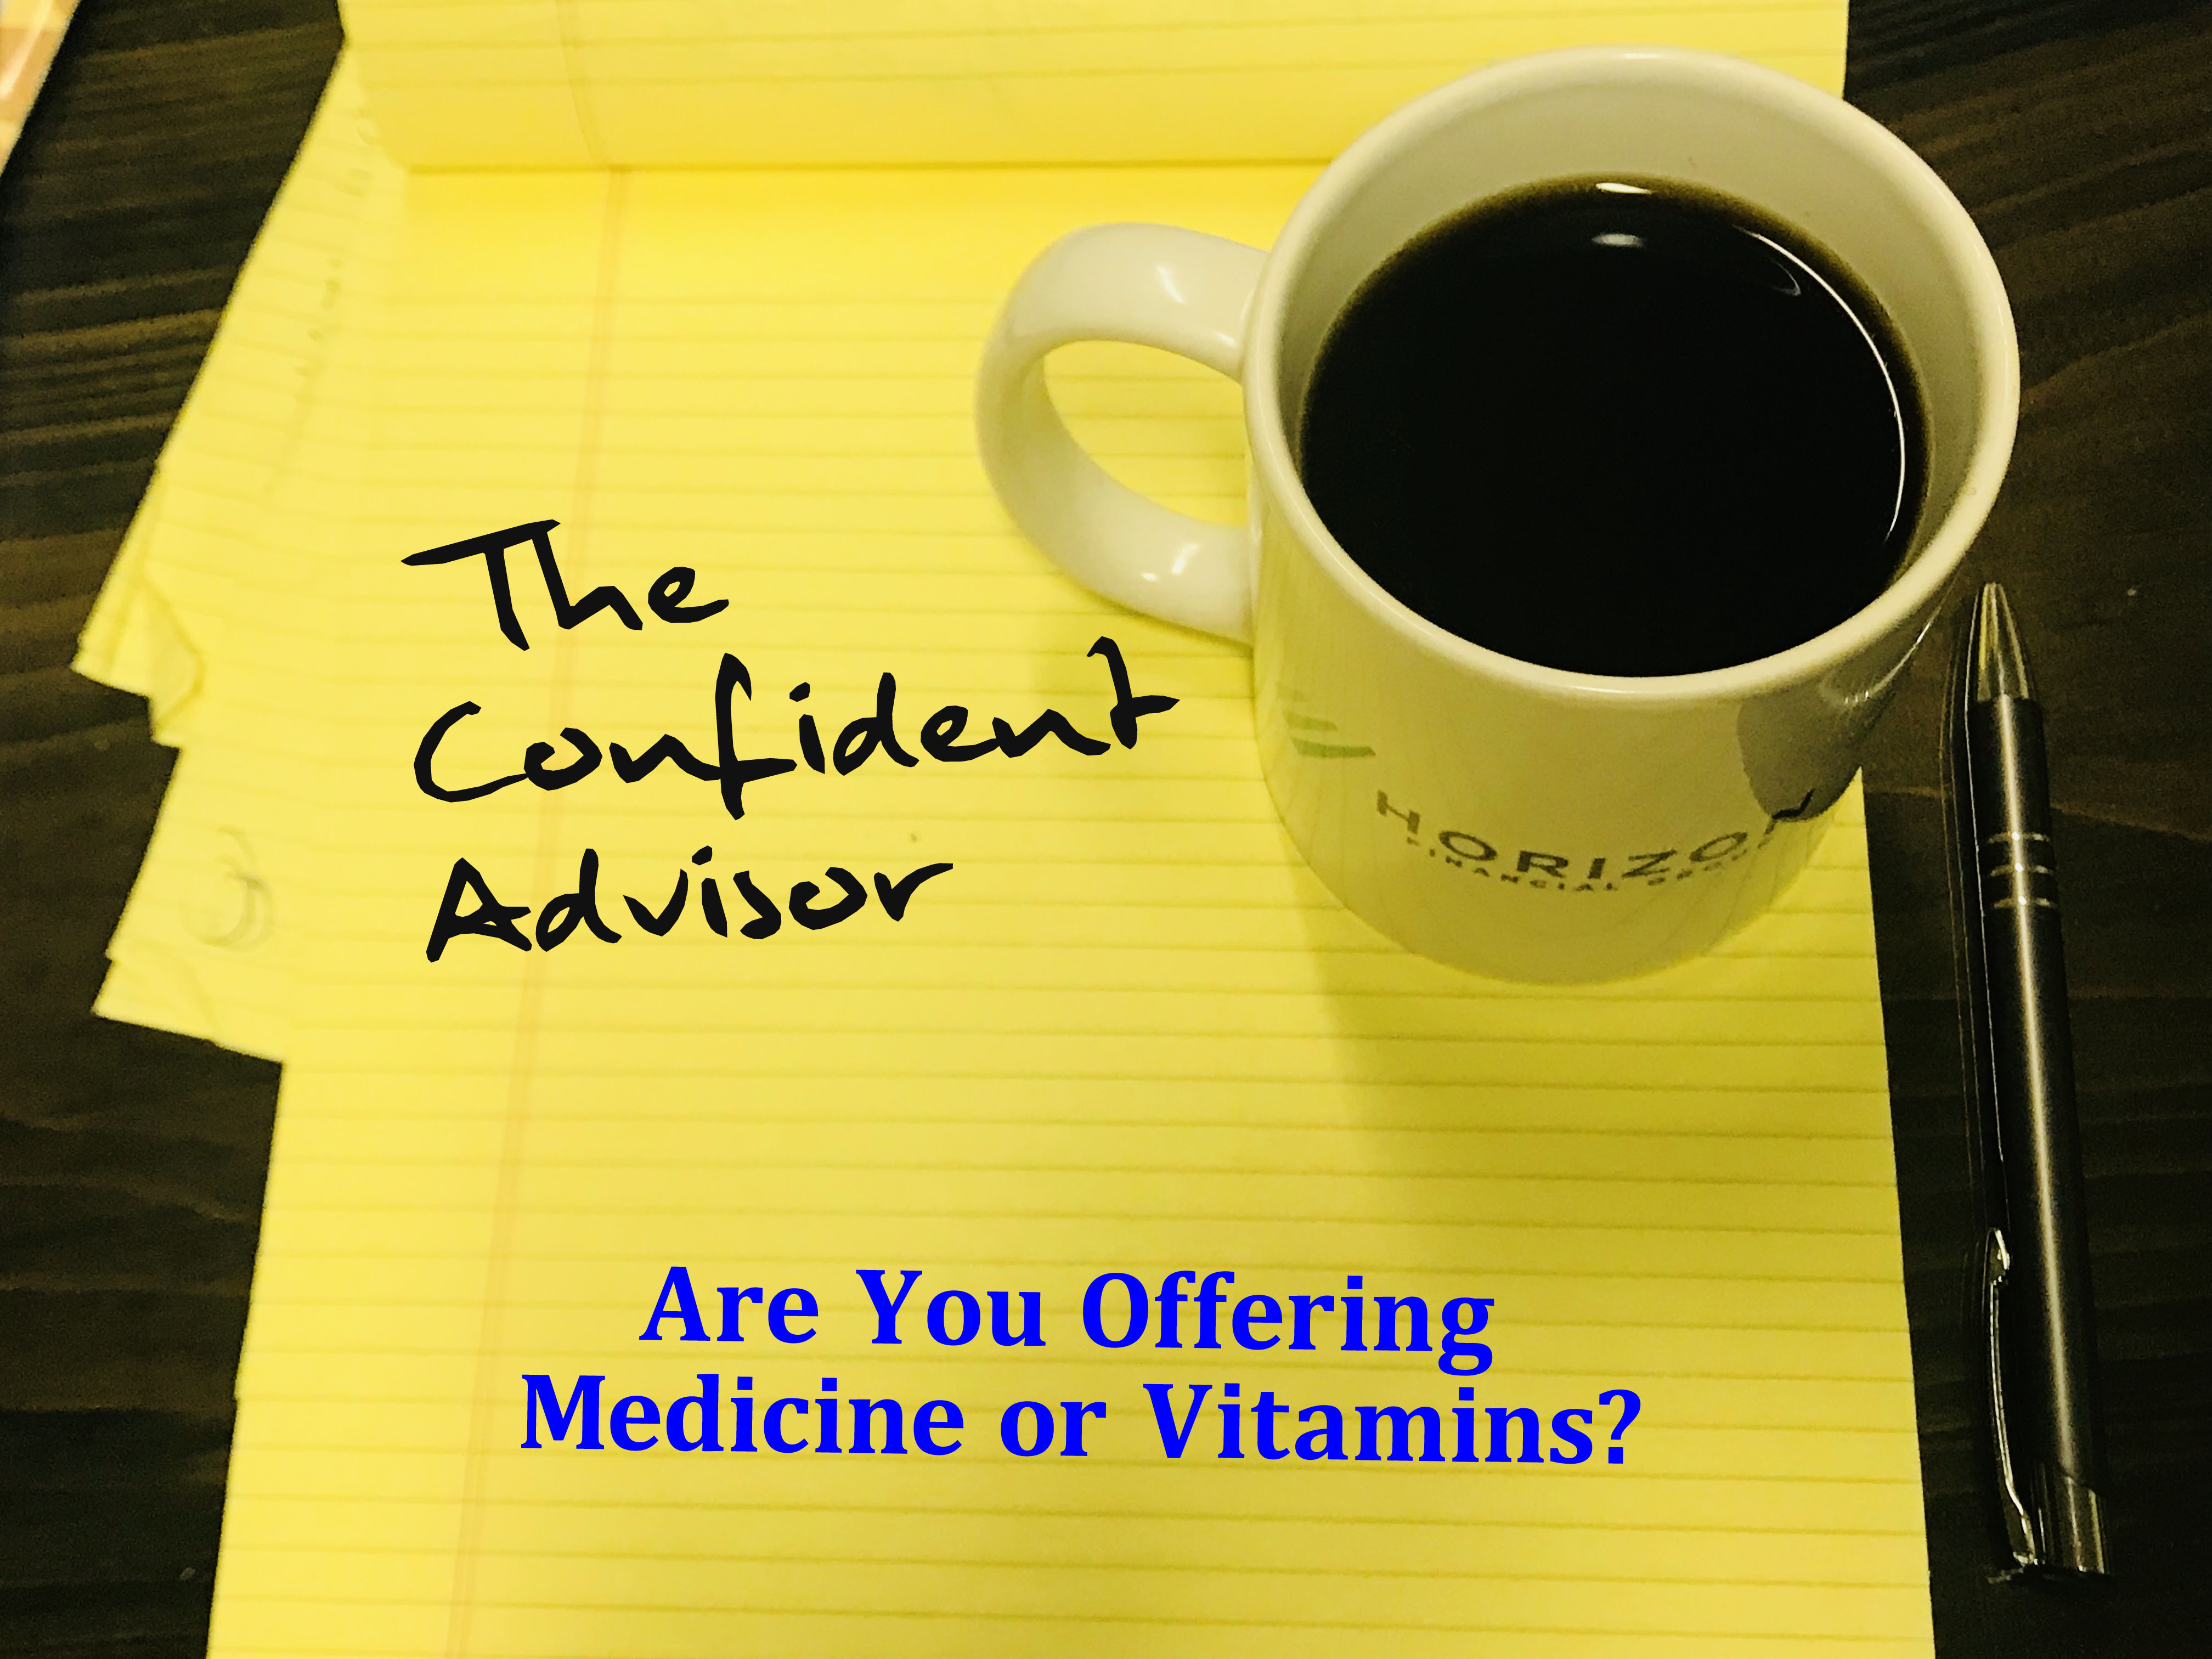 Are You Offering Medicine or Vitamins?